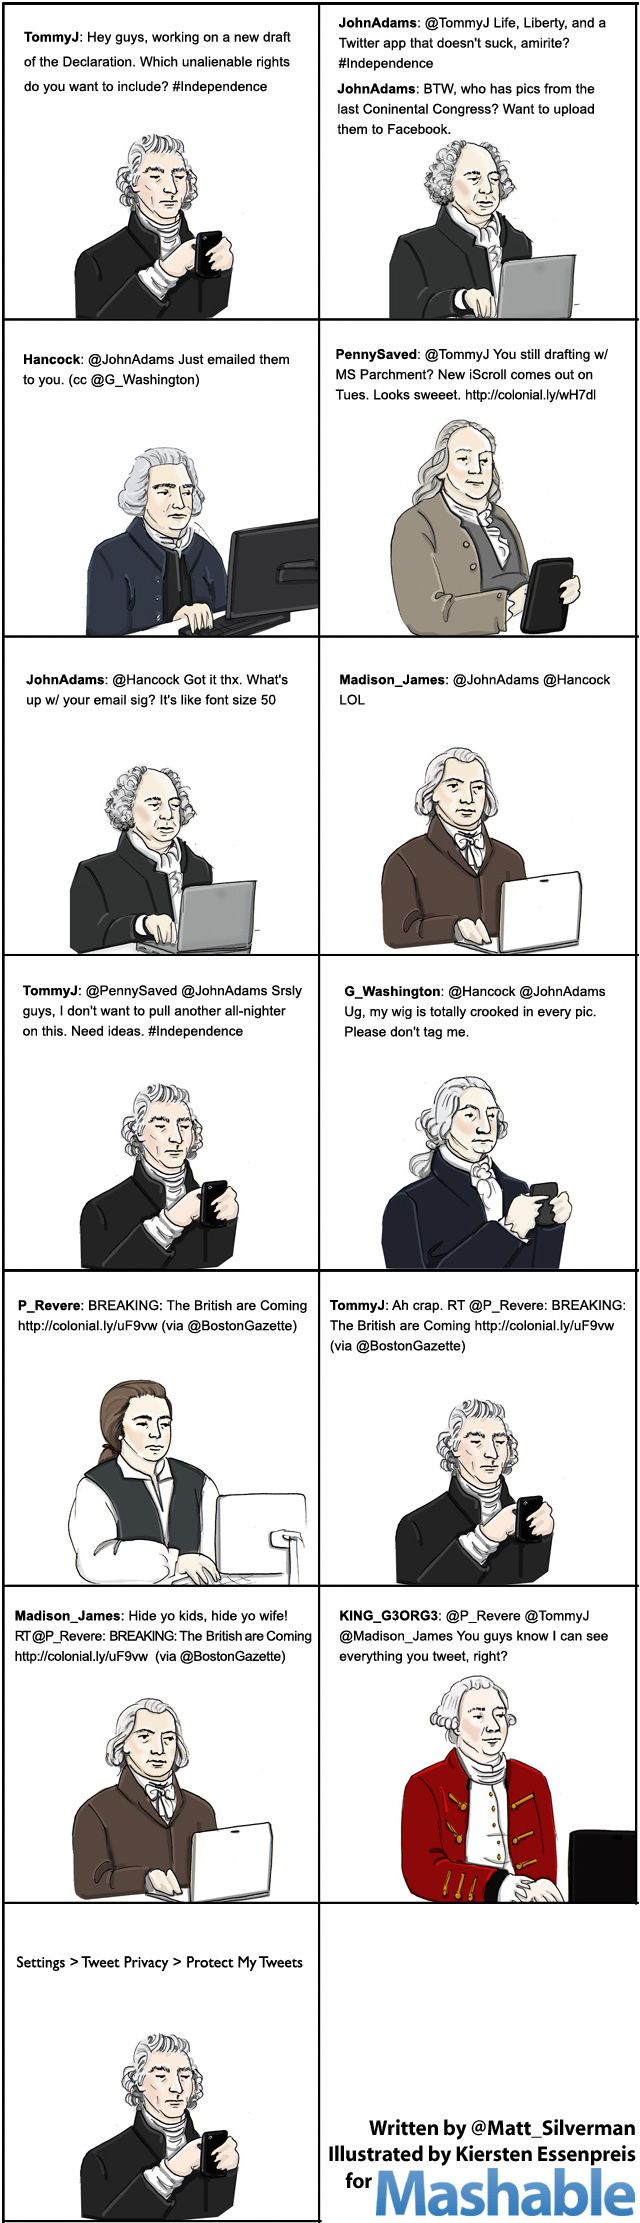 f Twitter had been invented in 1776 instead of 2006, the American Revolution would have been so much more… what's the word… awesome.